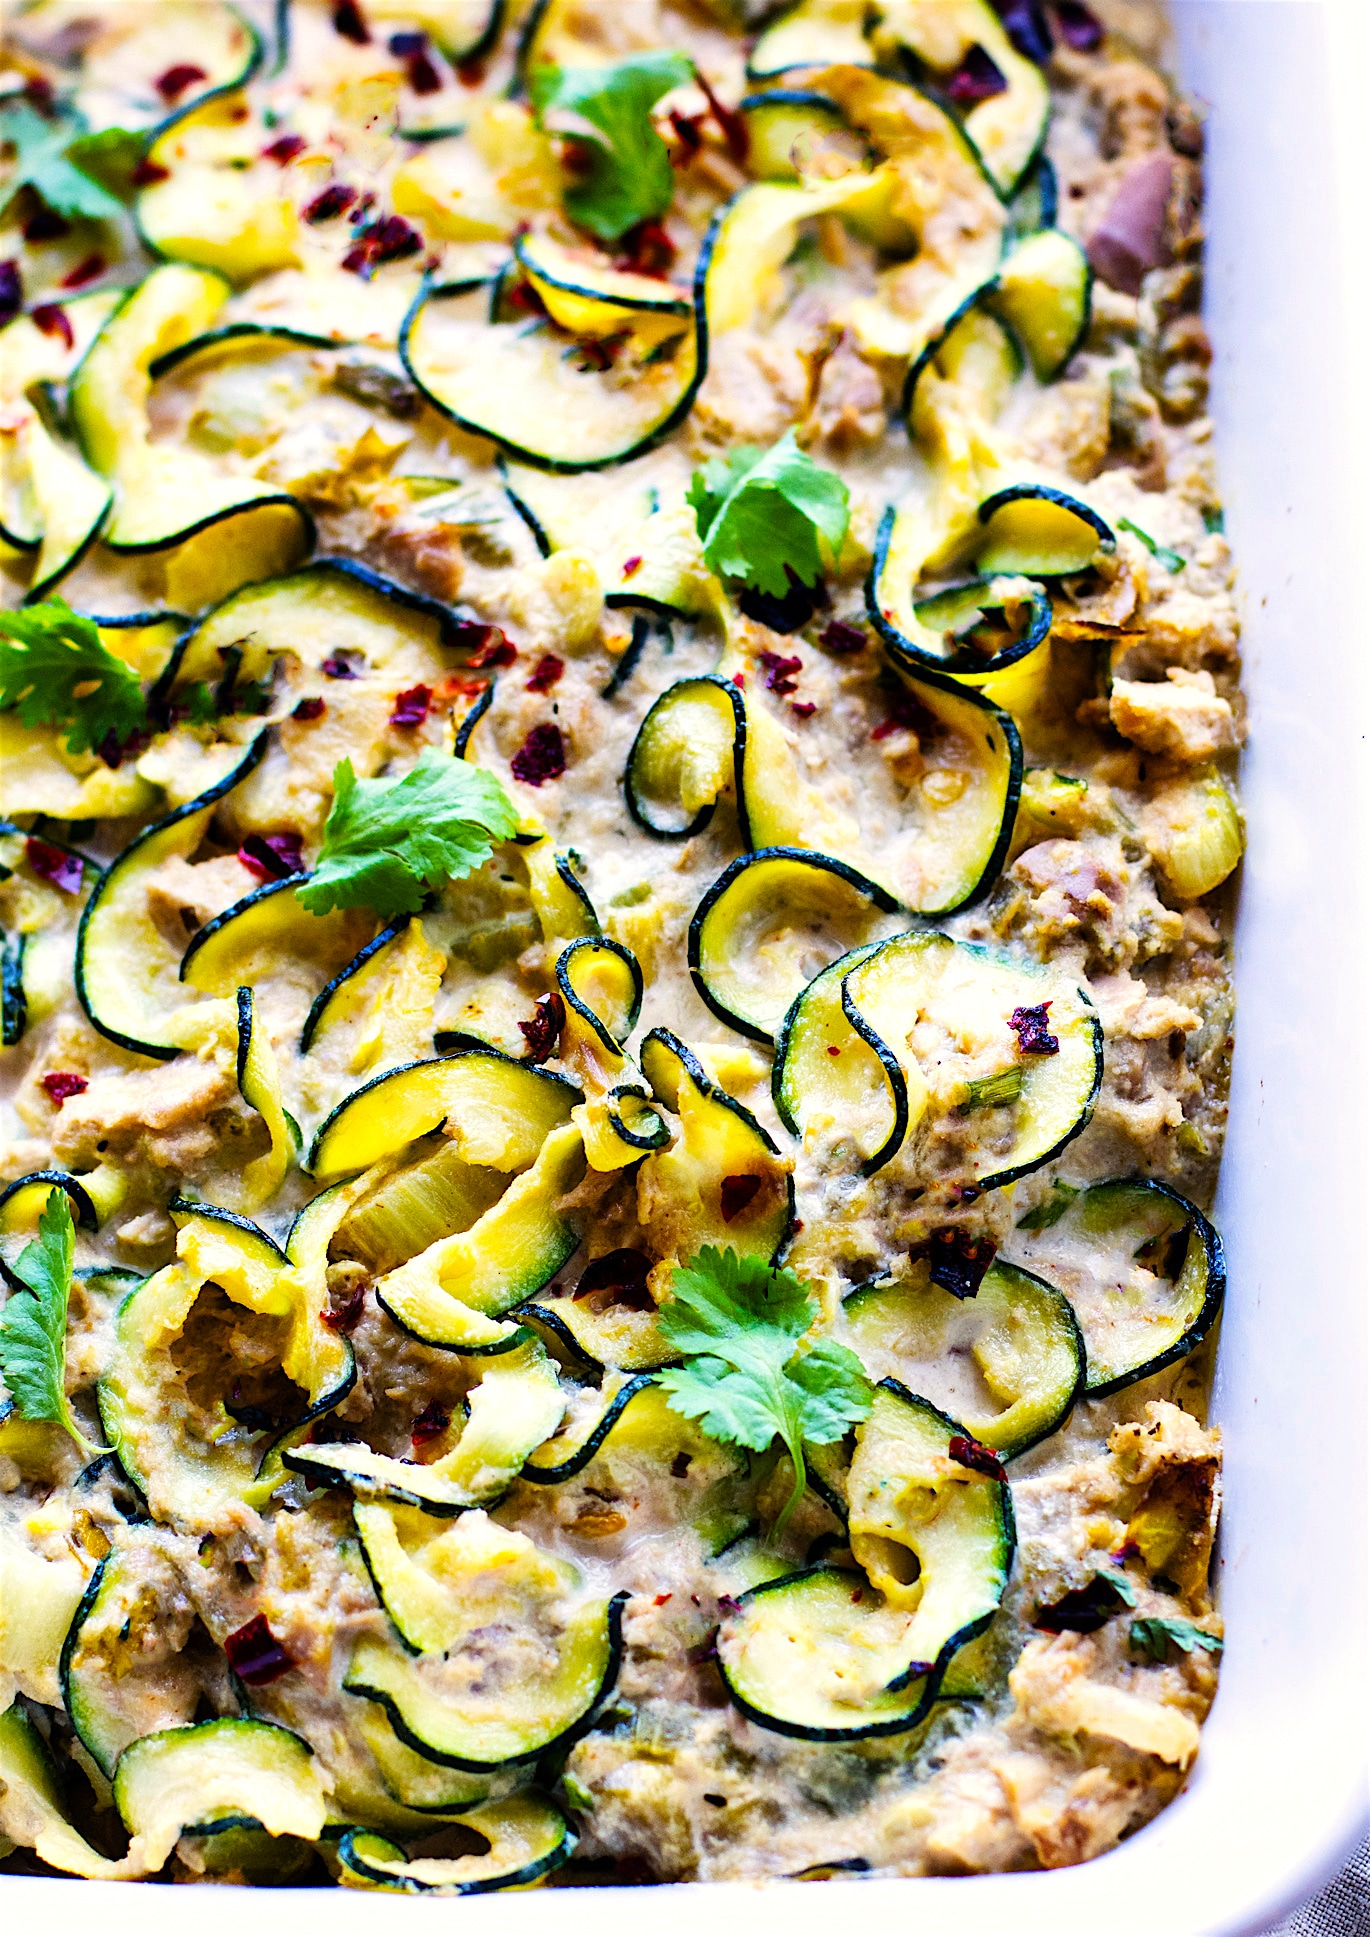 Paleo Tuna Green Chile Zoodle Casserole. An EASY paleo tuna zucchini noodle casserole that's Whole 30 approved, high protein, low carb. Hearty yet healthy, this dish can feed a family! A great way to use your spiralizer and boost your nutrition.